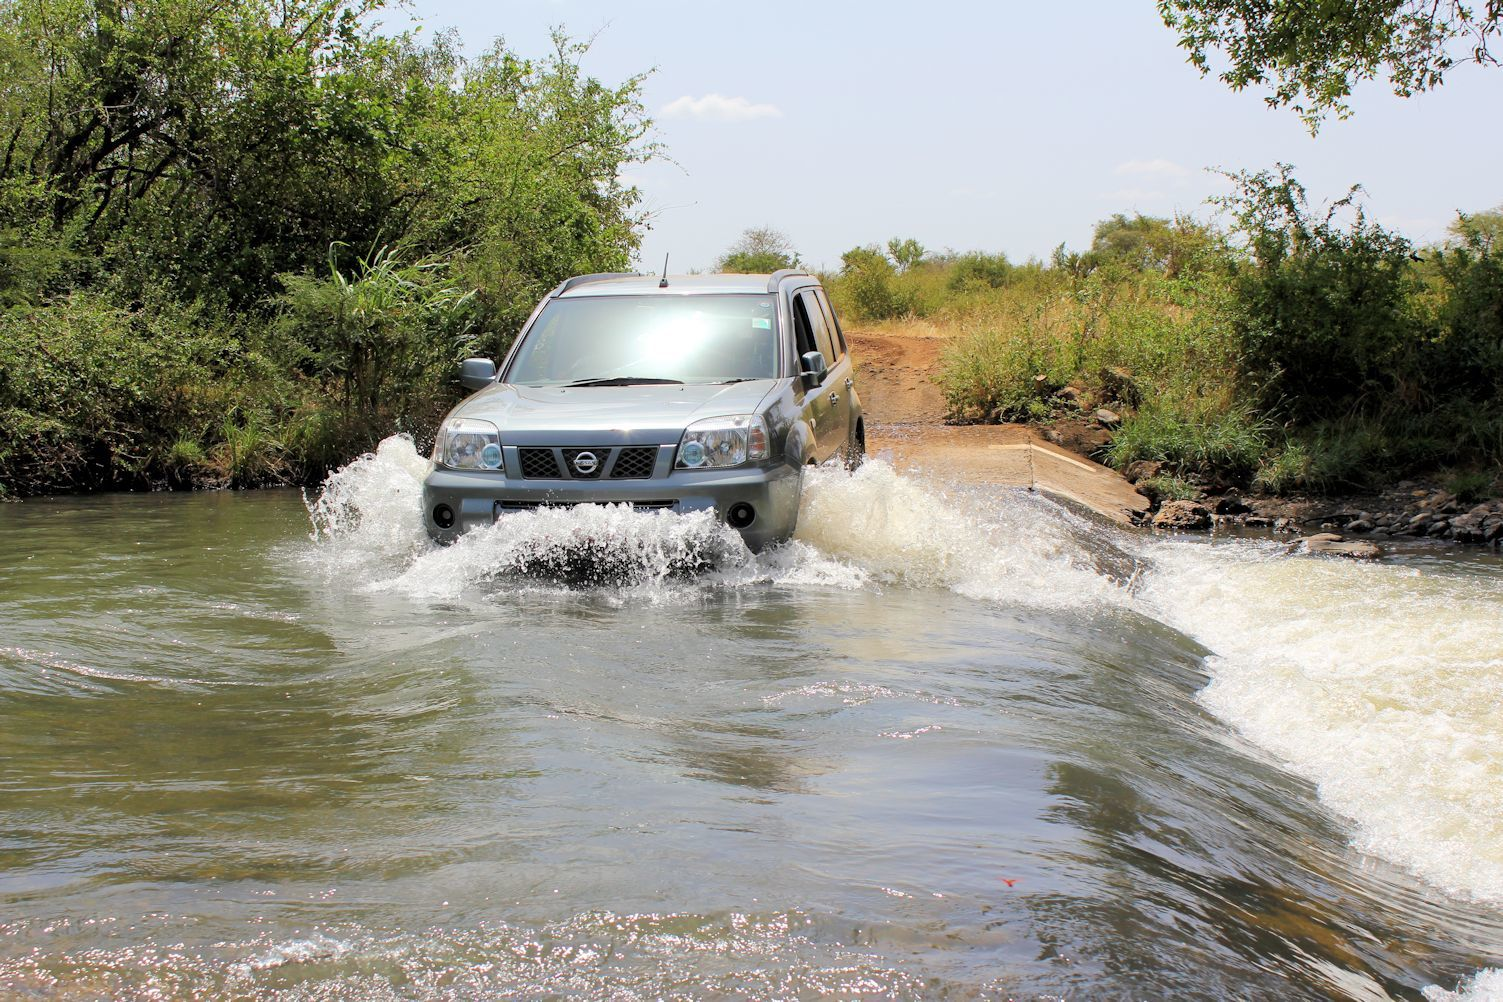 River crossing in Meru National Park